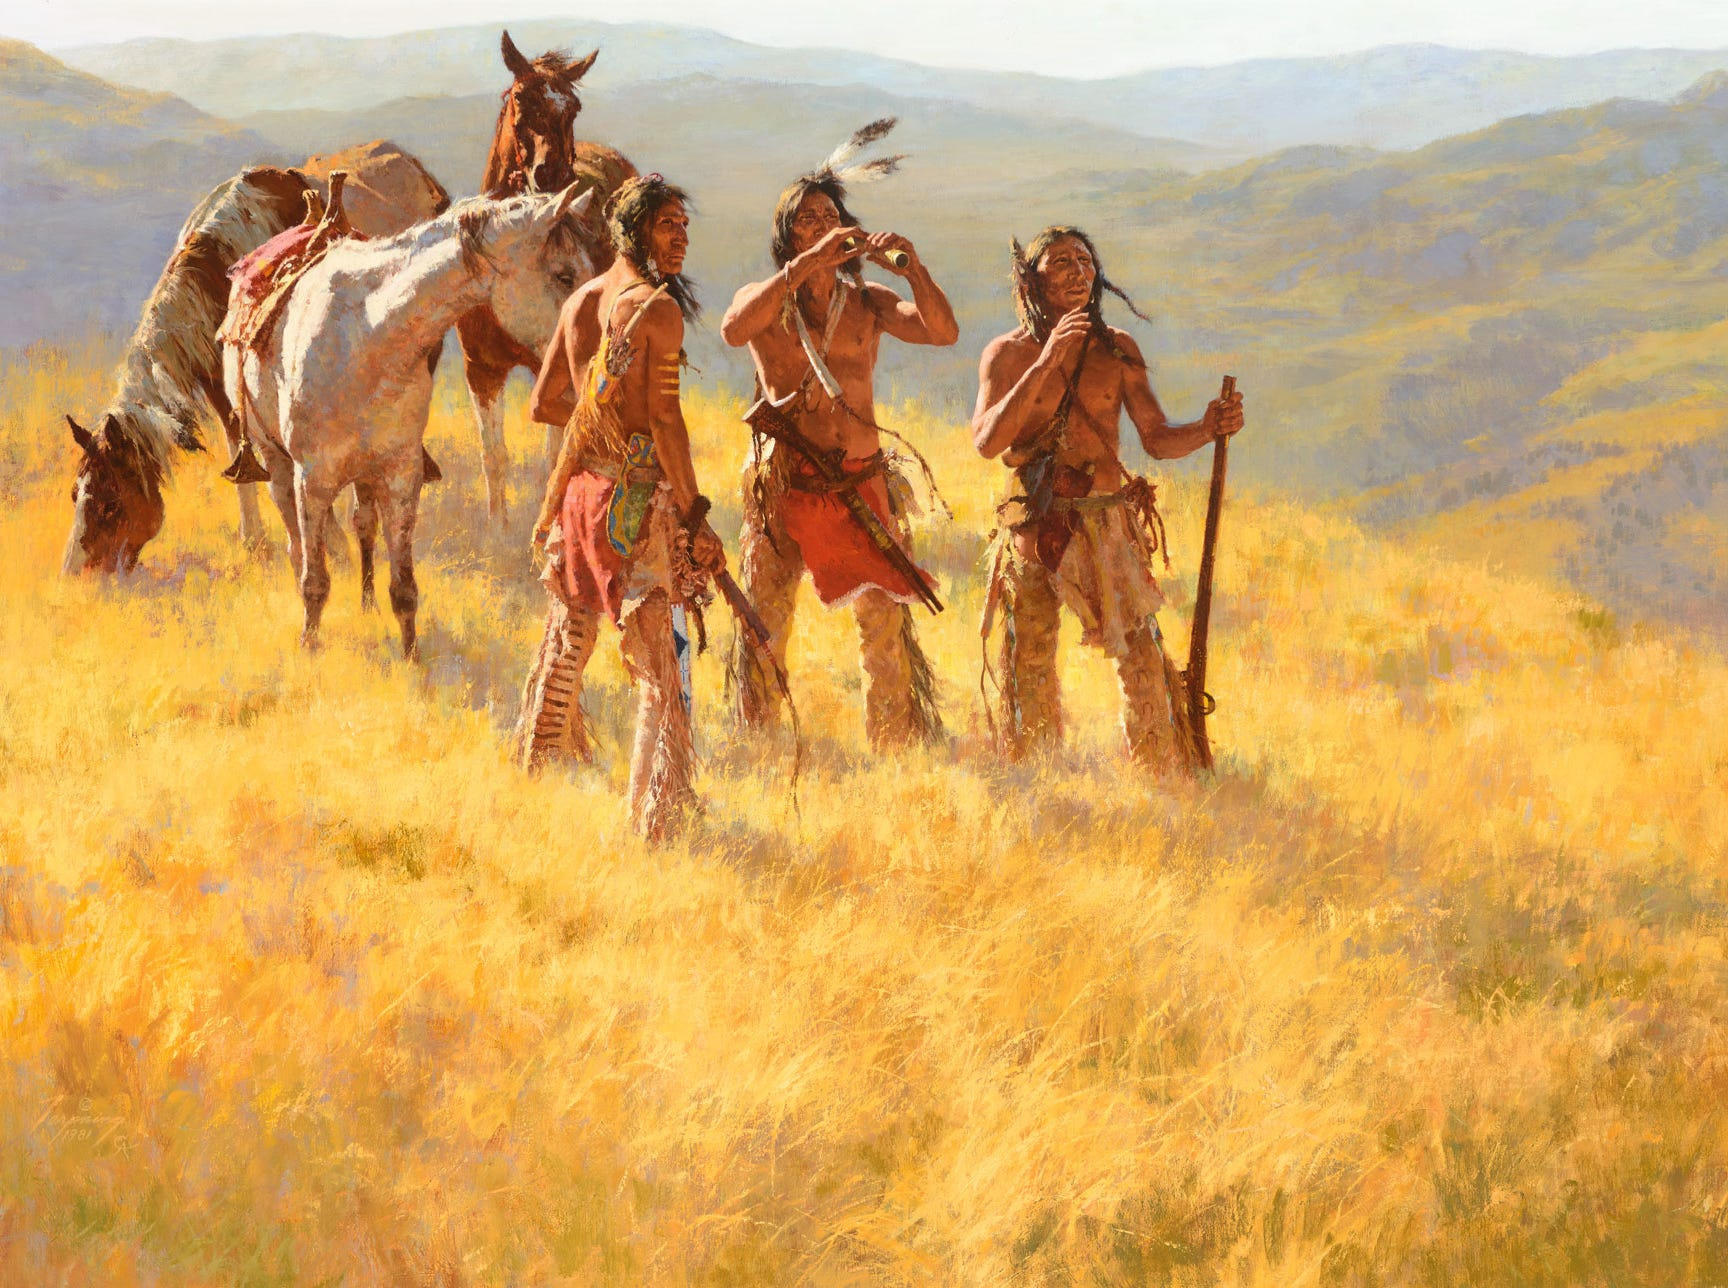 """""""Dust of Many Pony Soldiers,"""" 1981 by Howard Terpning, valued at up to $1.2 million, to be auctioned July 28, 2018 as part of the Coeur d'Alene Art Auction in Reno."""